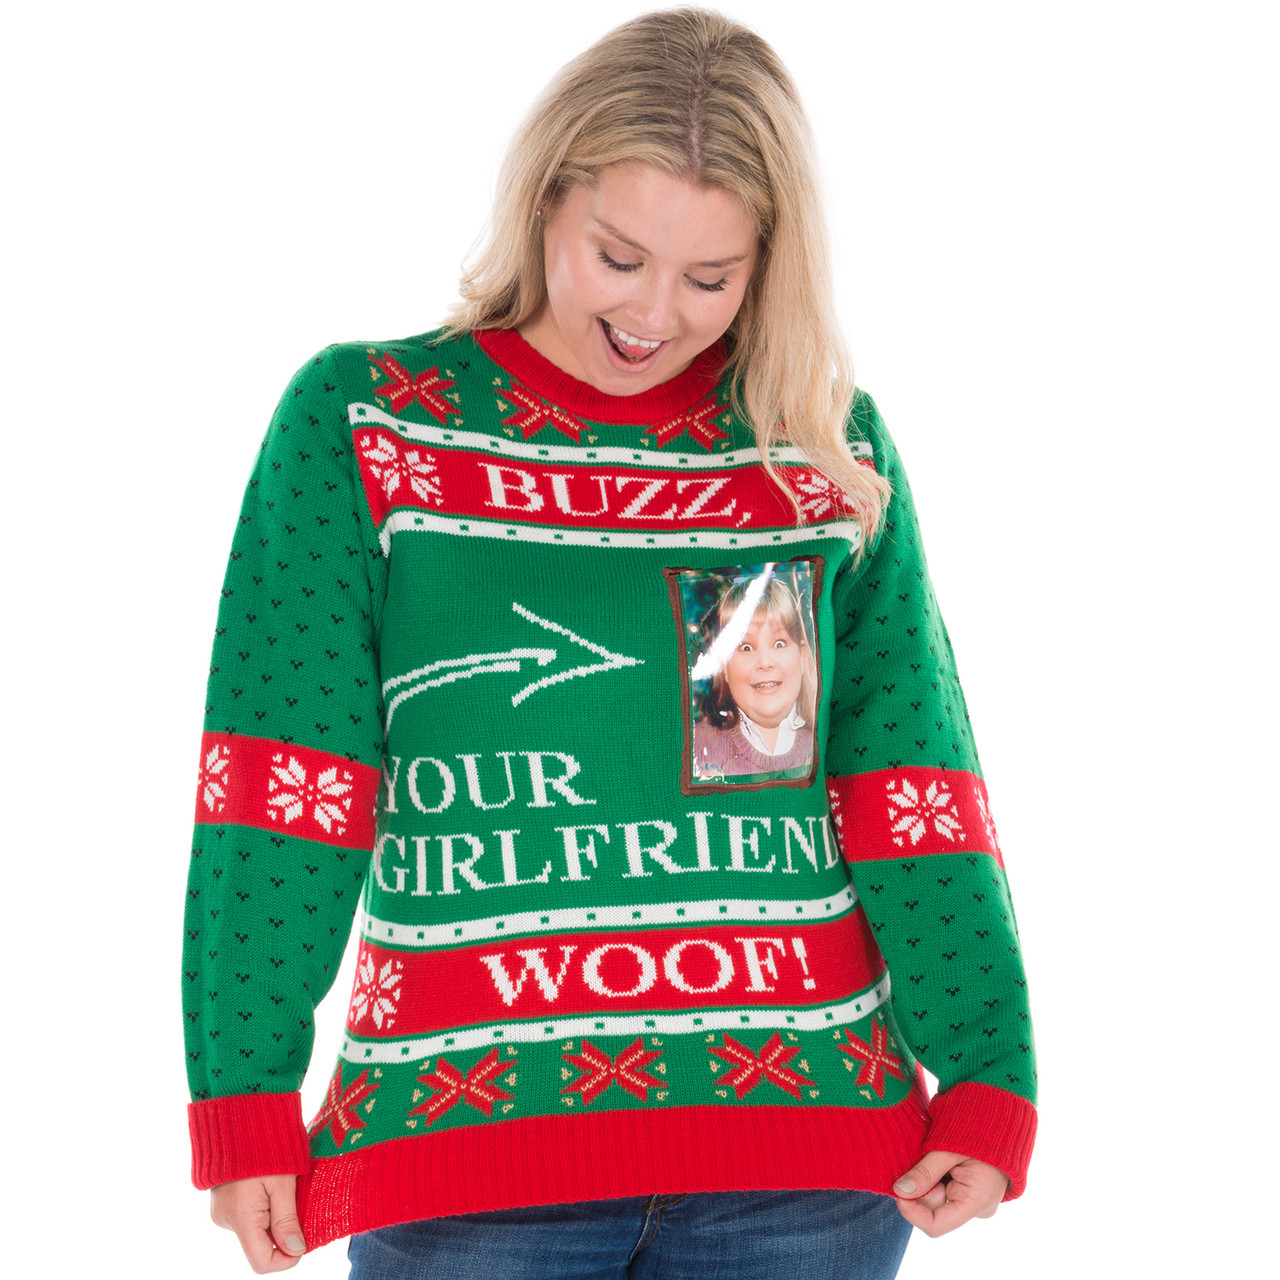 Home alone christmas sweater